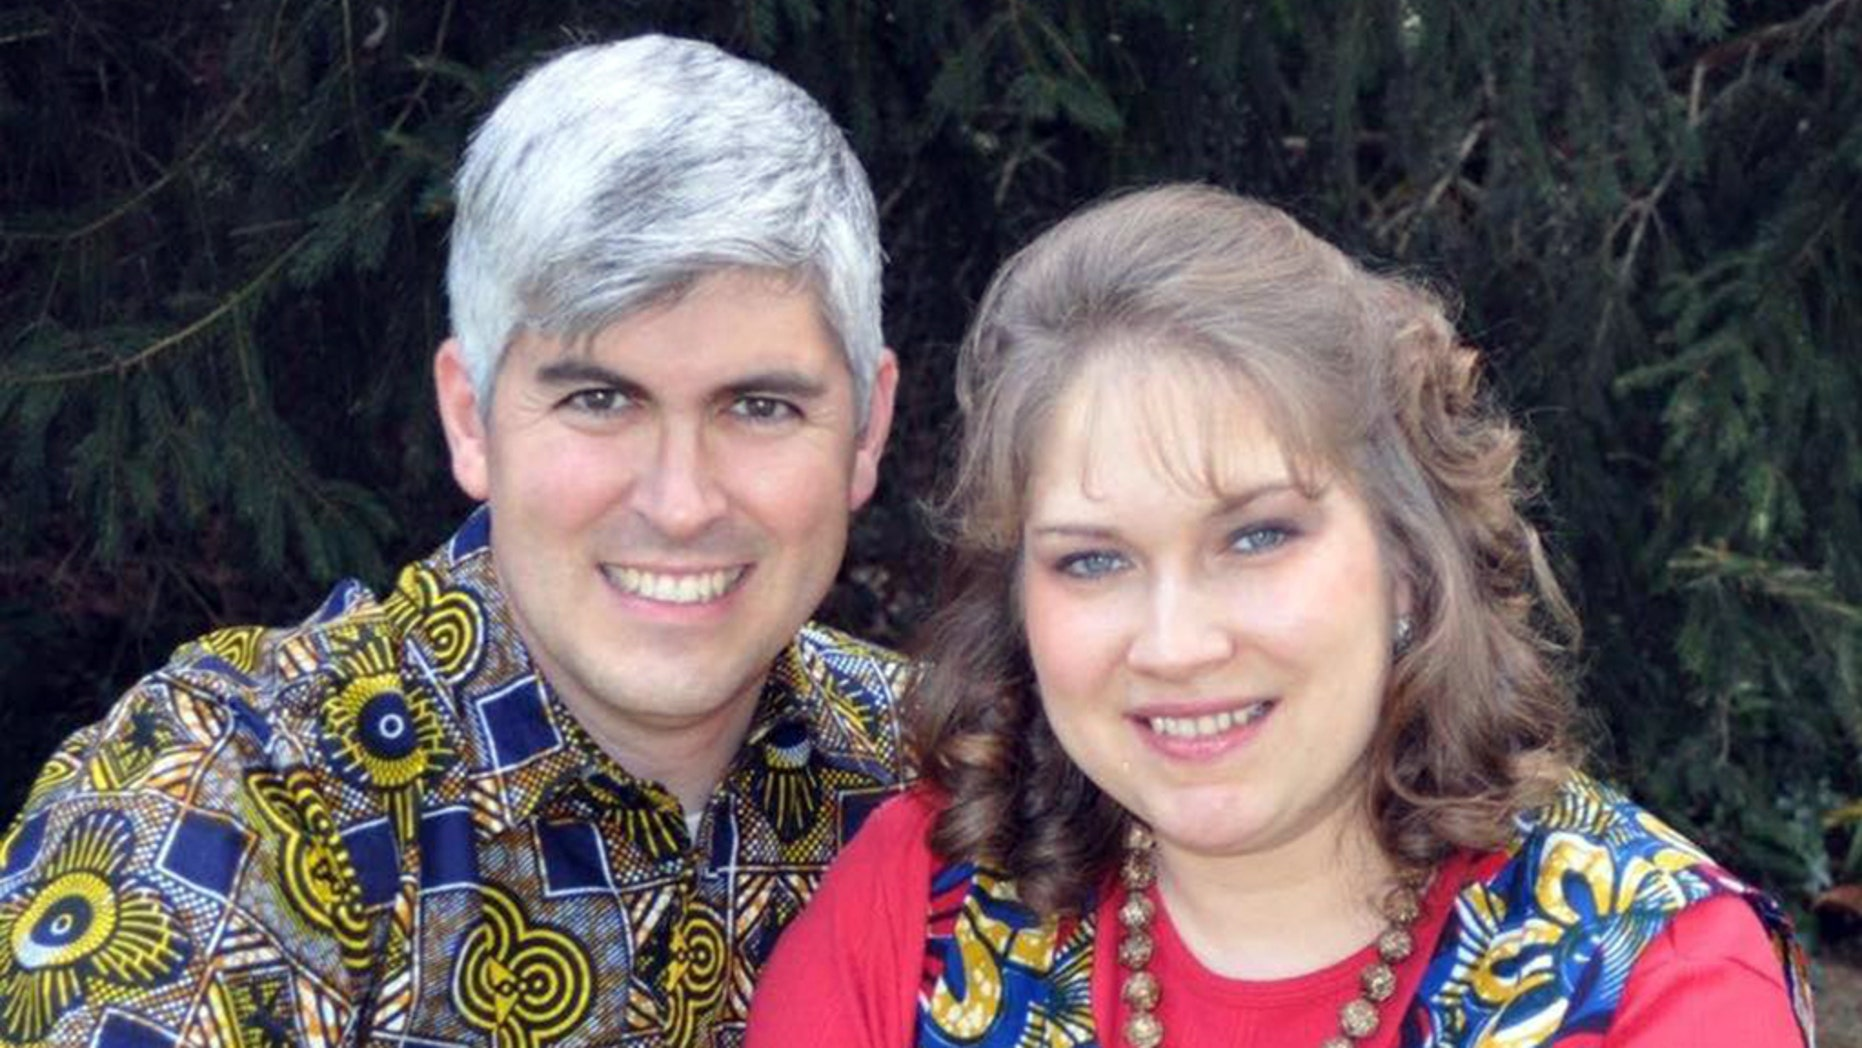 Charles Trumann Wesco, a missionary from Indiana (pictured with his wife Stephanie), died in northwestern Cameroon after being shot in the head Tuesday amid fighting between armed separatists and soldiers. (Facebook)